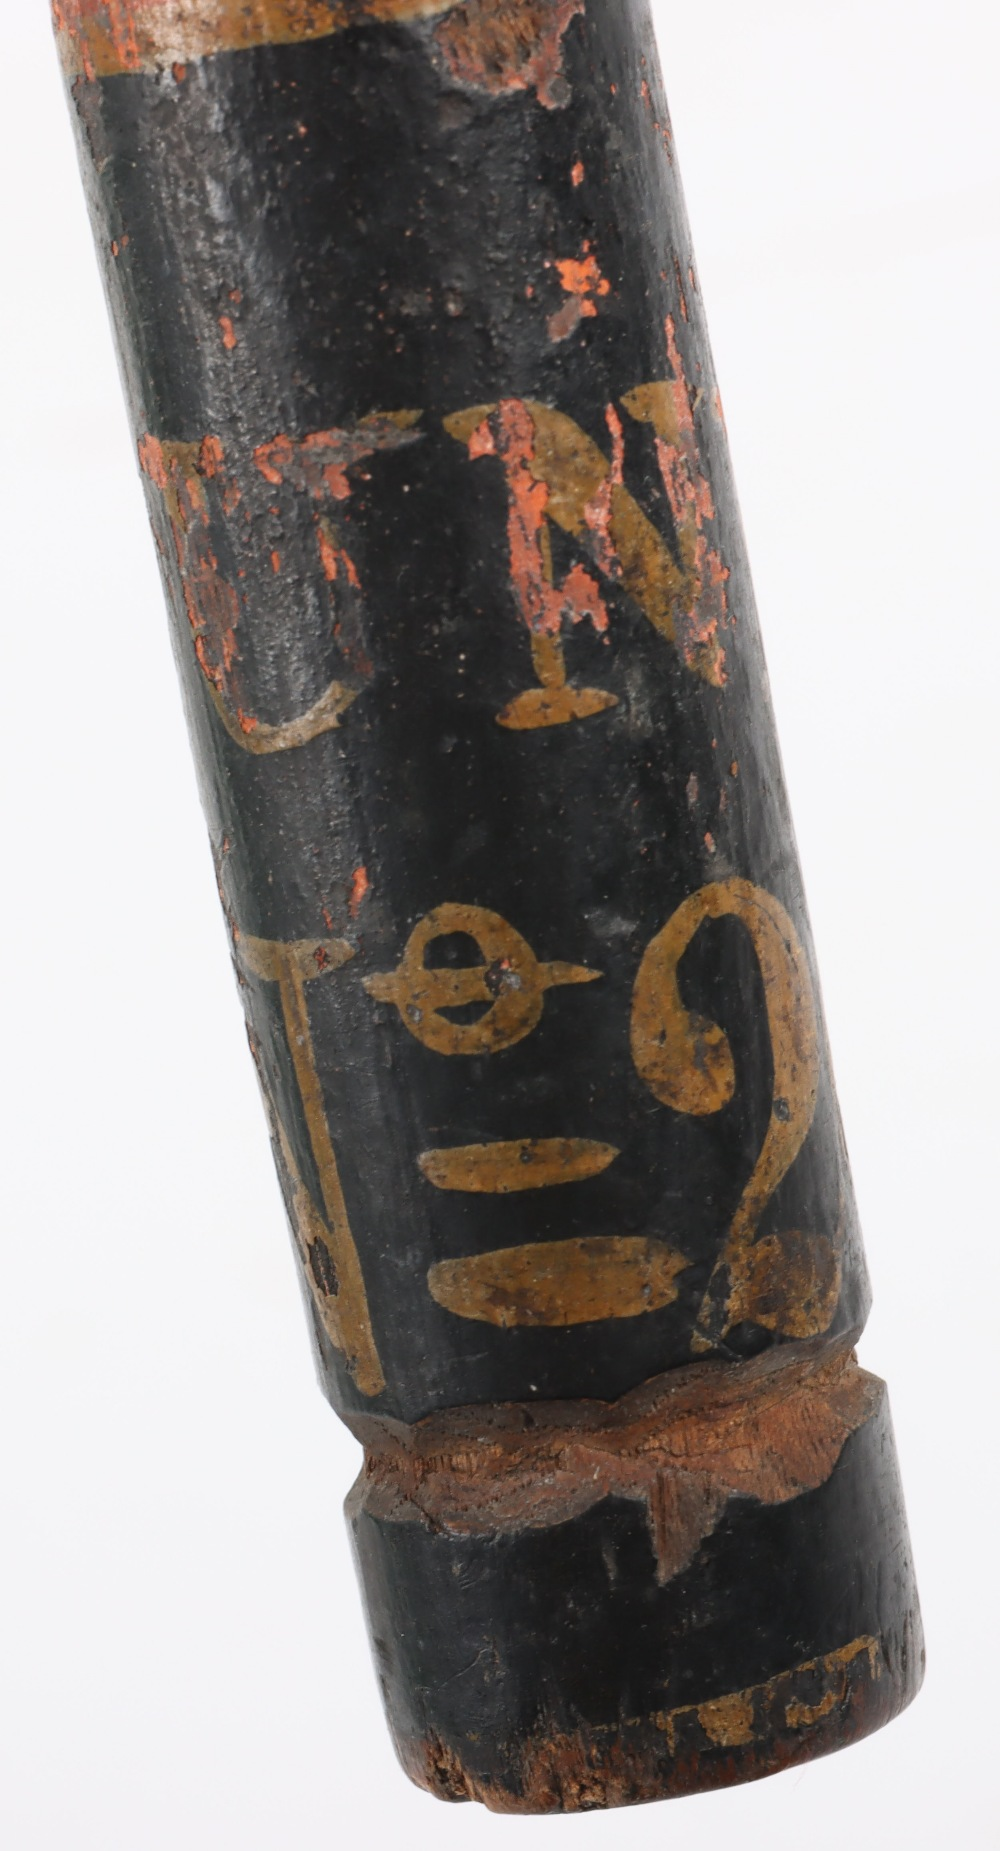 Painted Wooden Truncheon / Staff - Image 4 of 8